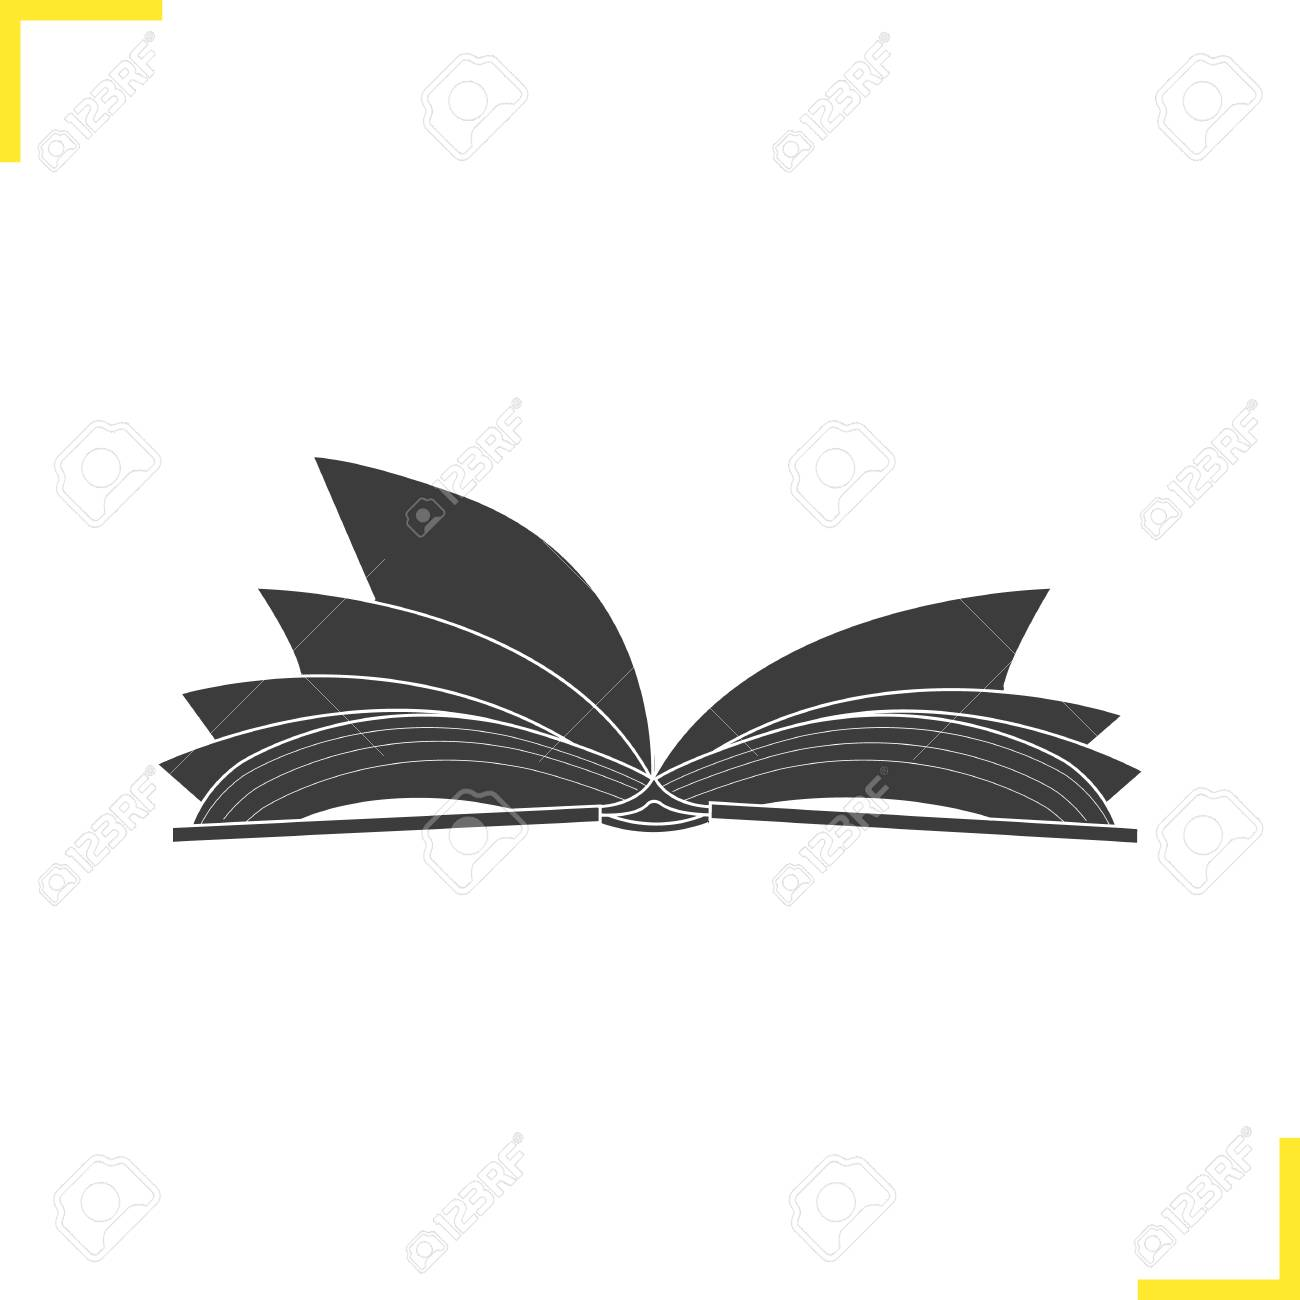 Open Book Silhouette Vector.